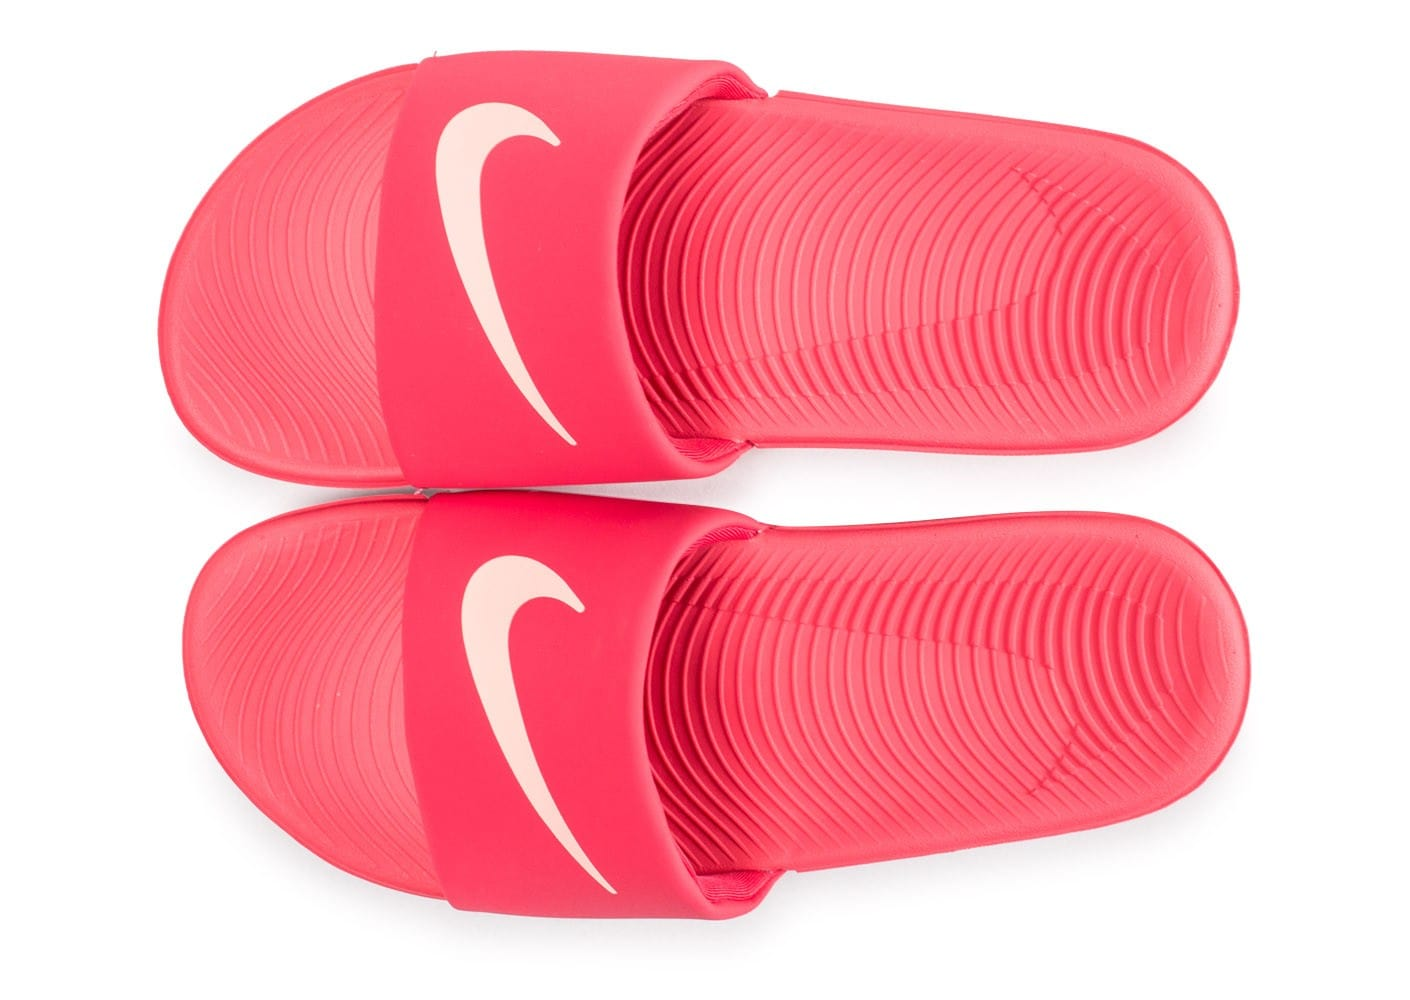 check out d2126 988bf ... Chaussures Nike Kawa Slide 2 junior rose vue arrière ...